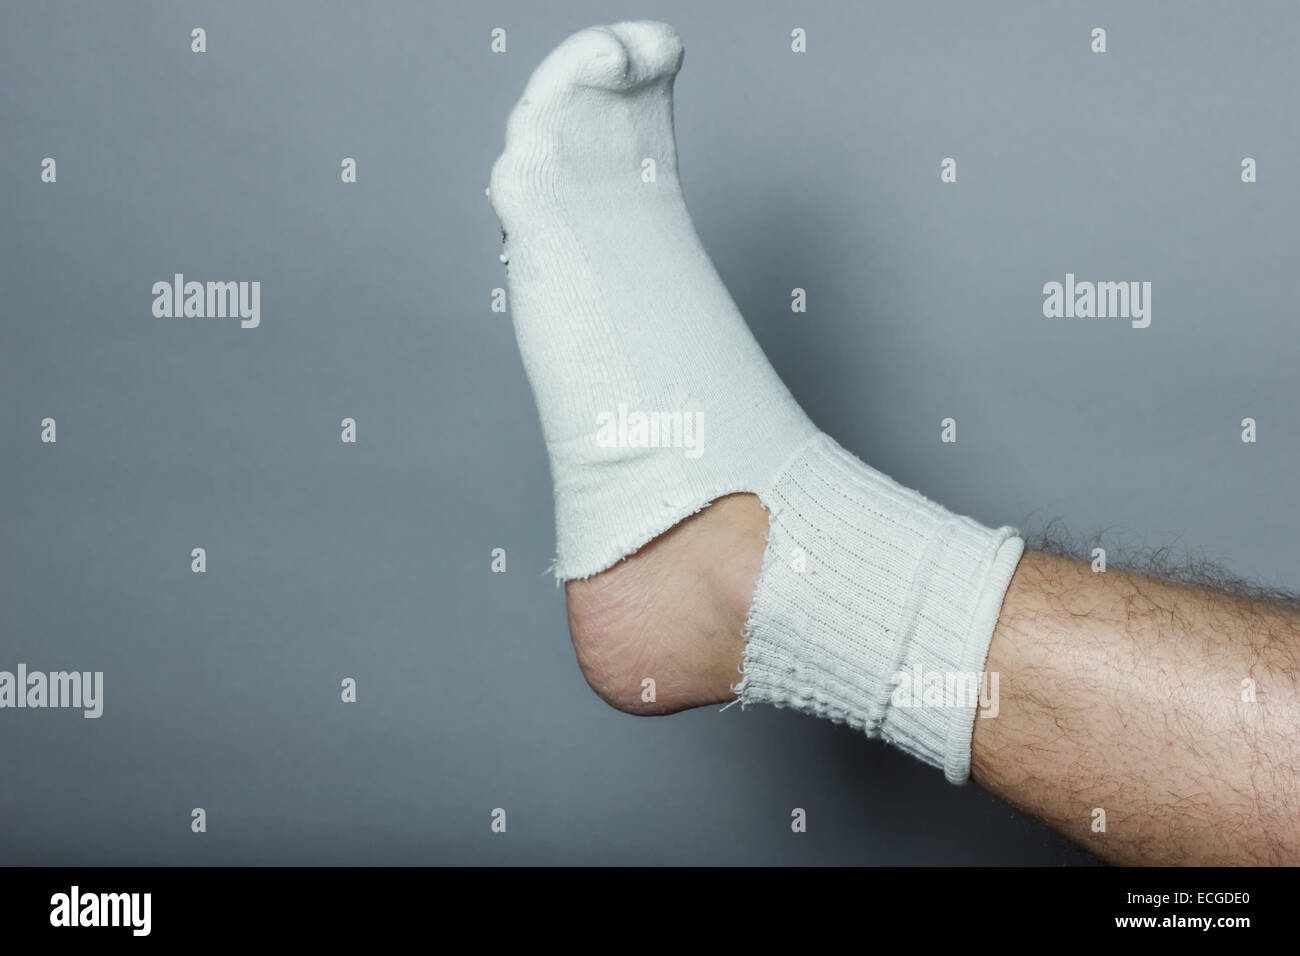 straight leg with a big hole in the sock - Stock Image